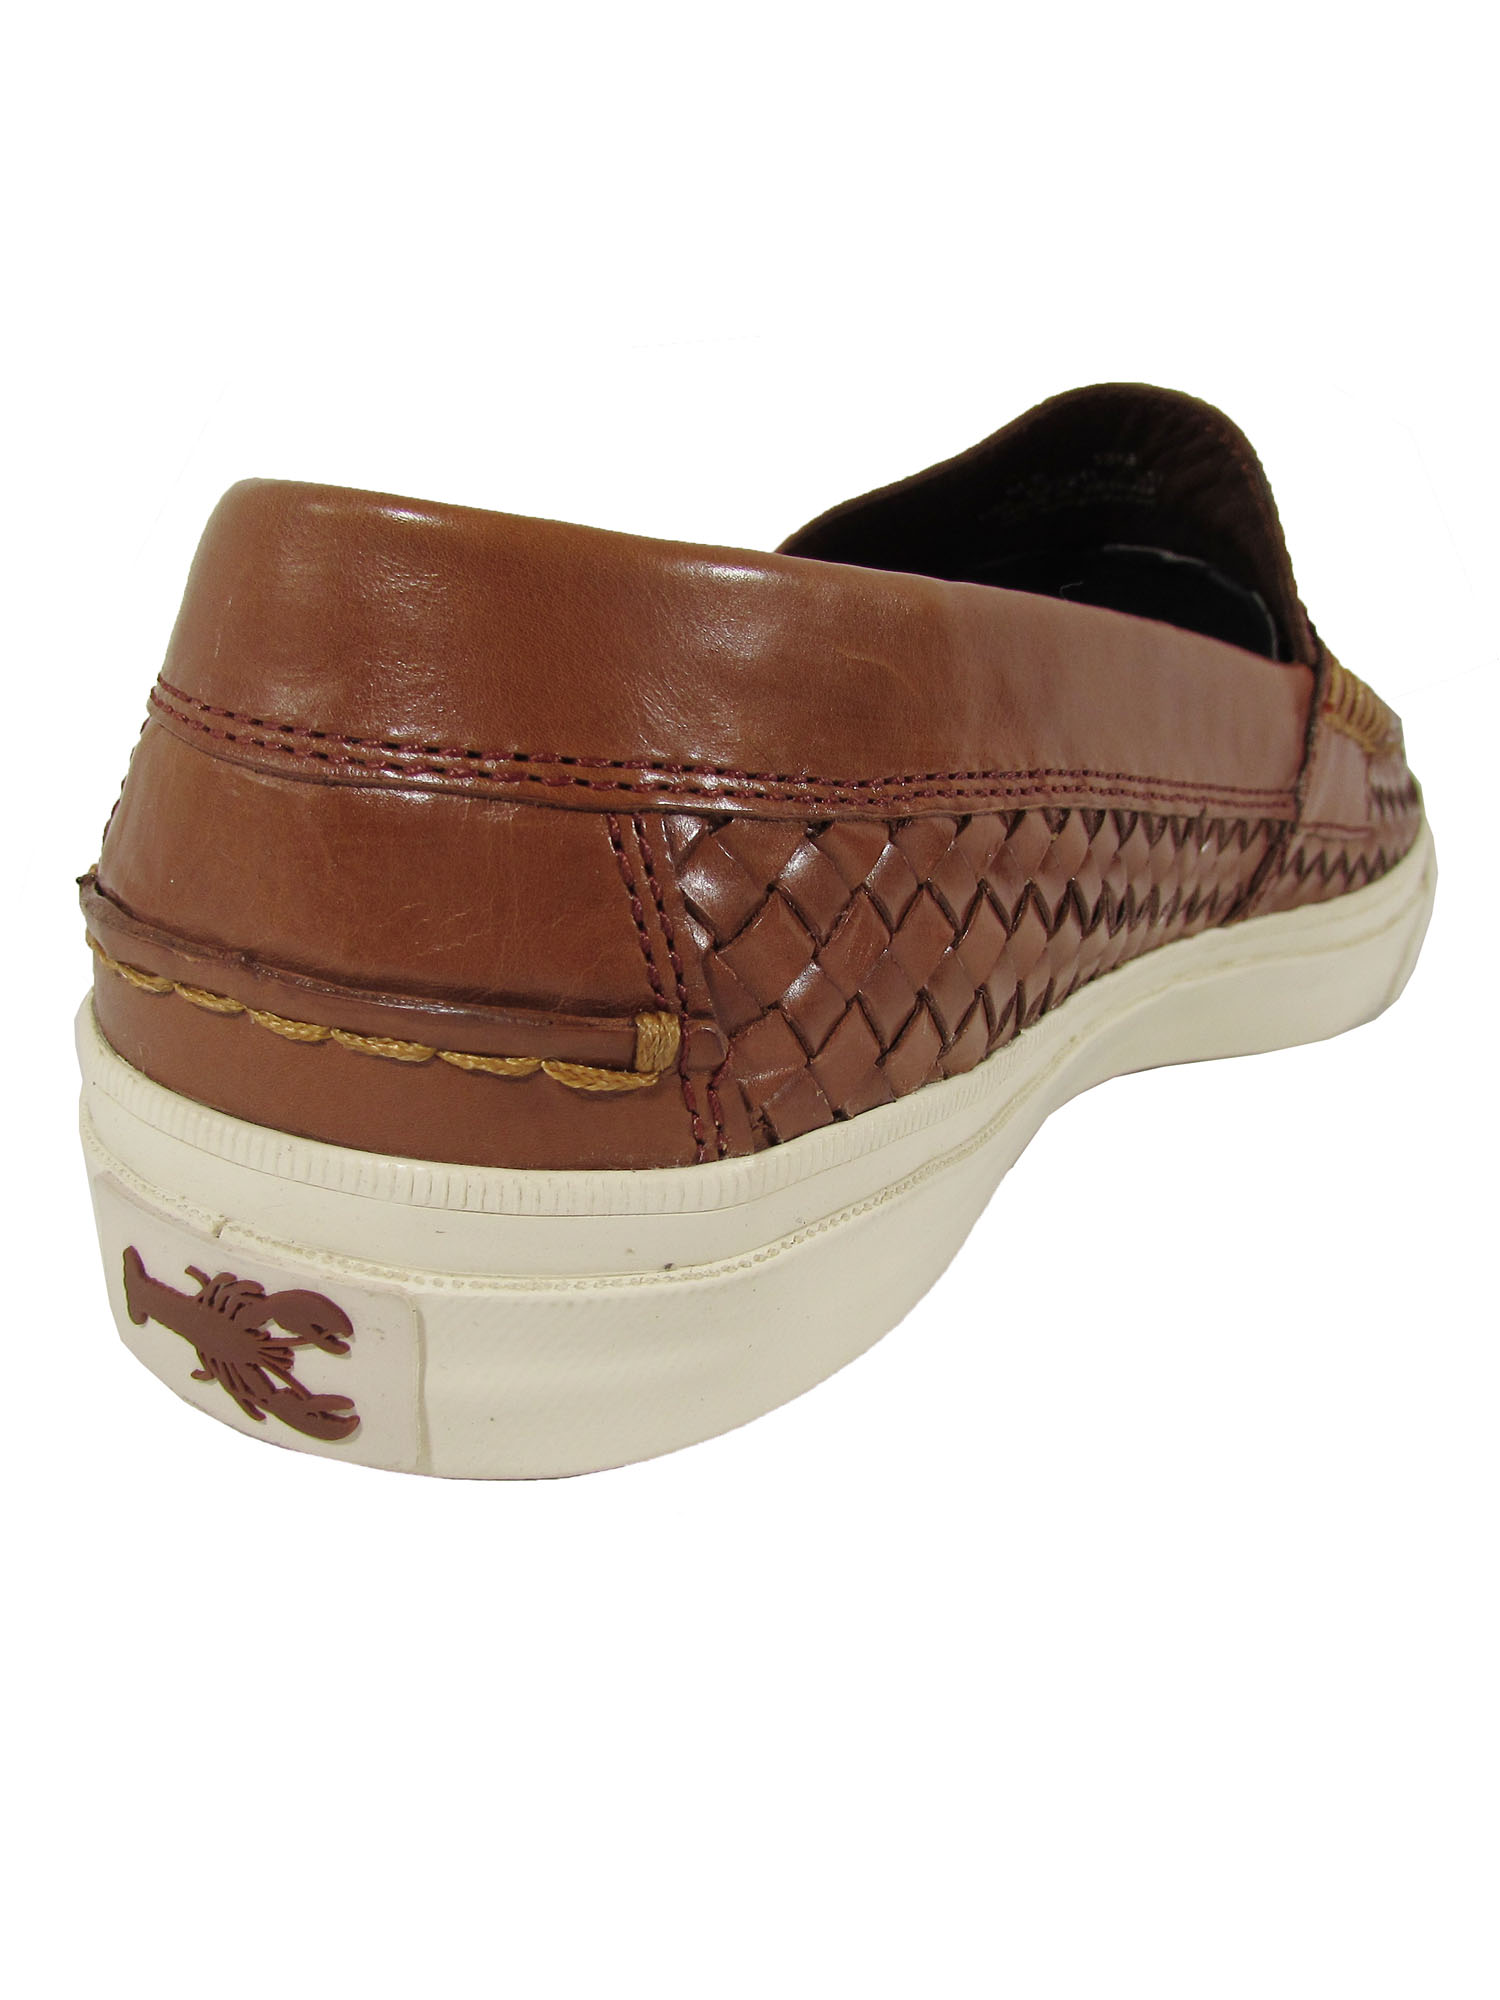 799b6bf84e8 Cole Haan Mens Pinch Weekender LX Huarache Loafer Shoes